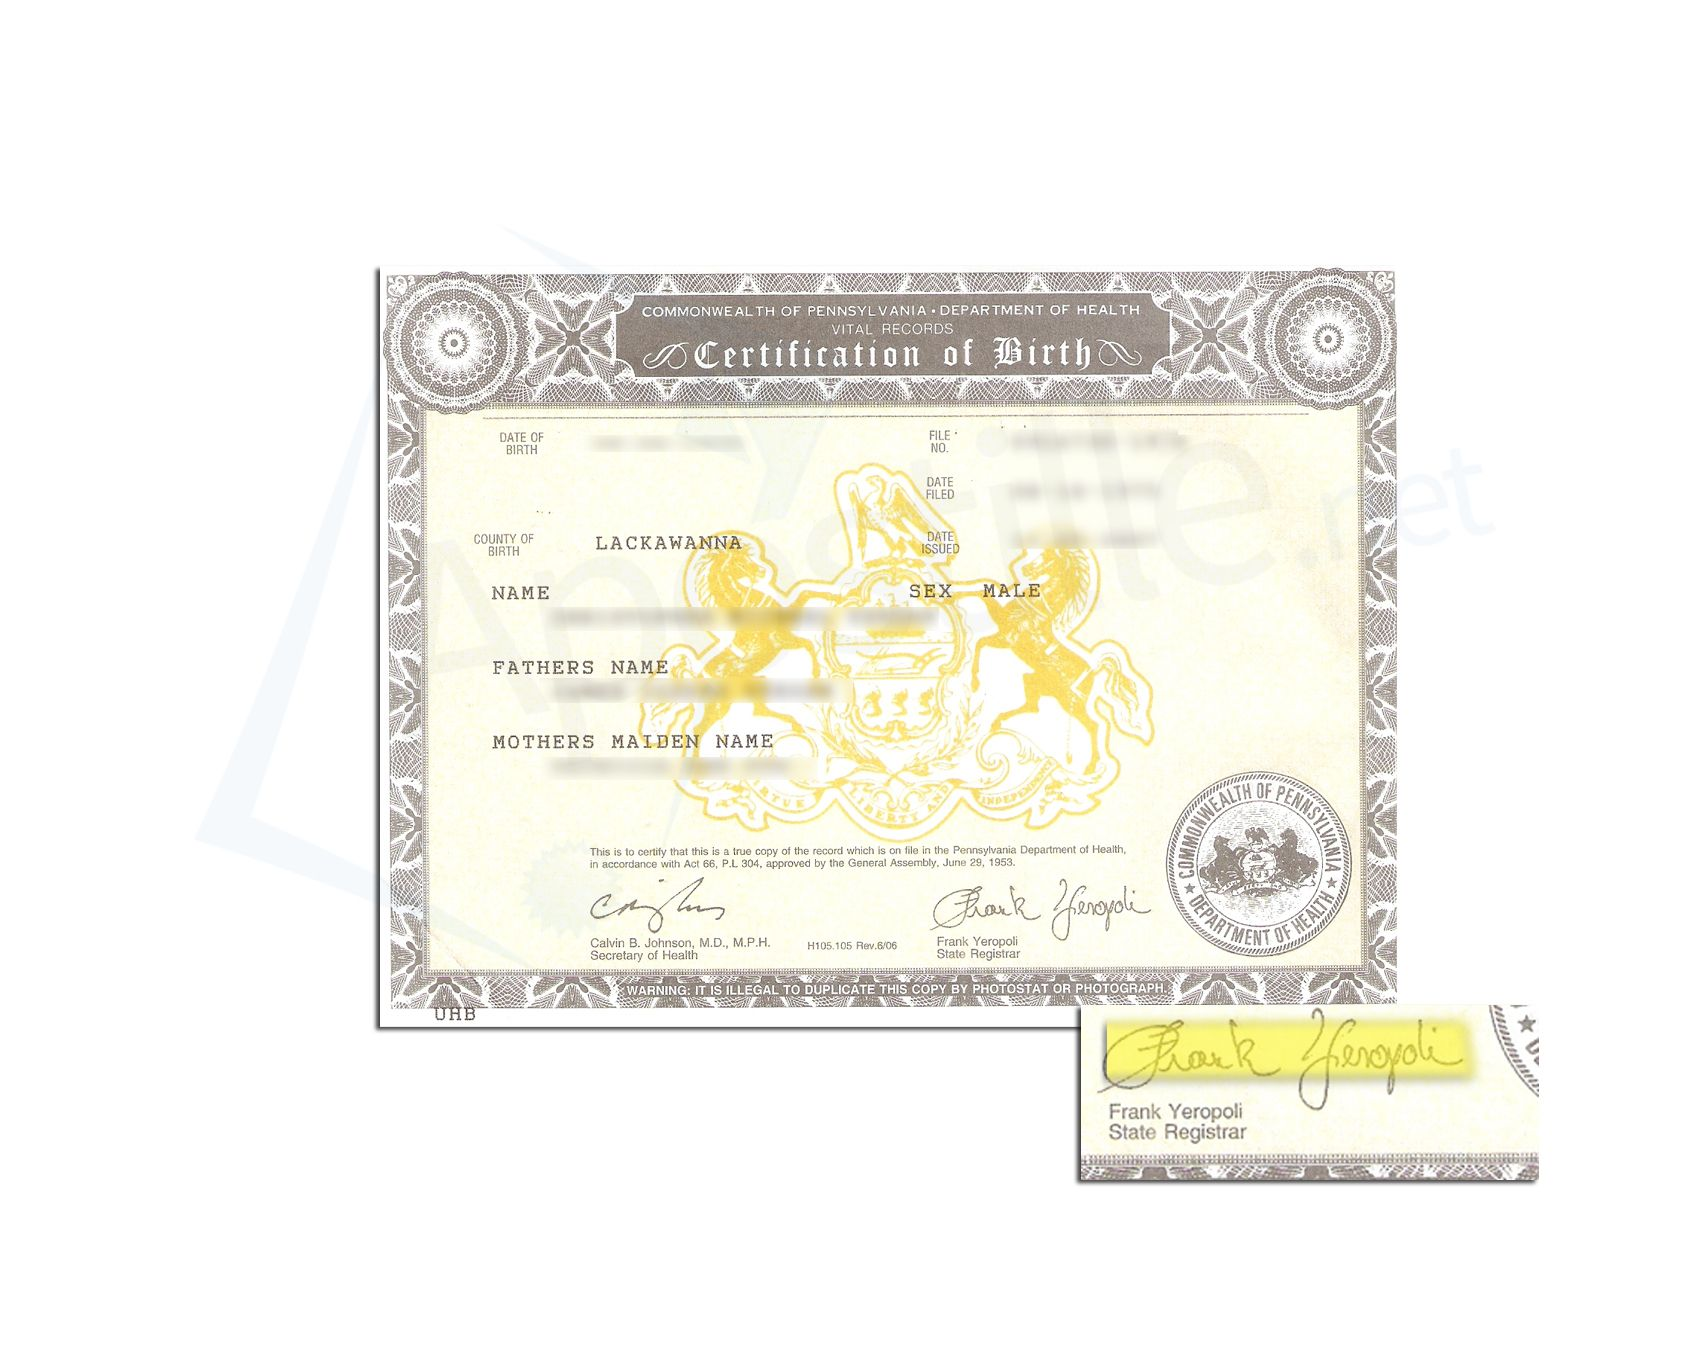 County of lackawanna state of pennsylvania birth certificate county of lackawanna state of pennsylvania birth certificate issued by frank yeropoli state registrar xflitez Choice Image